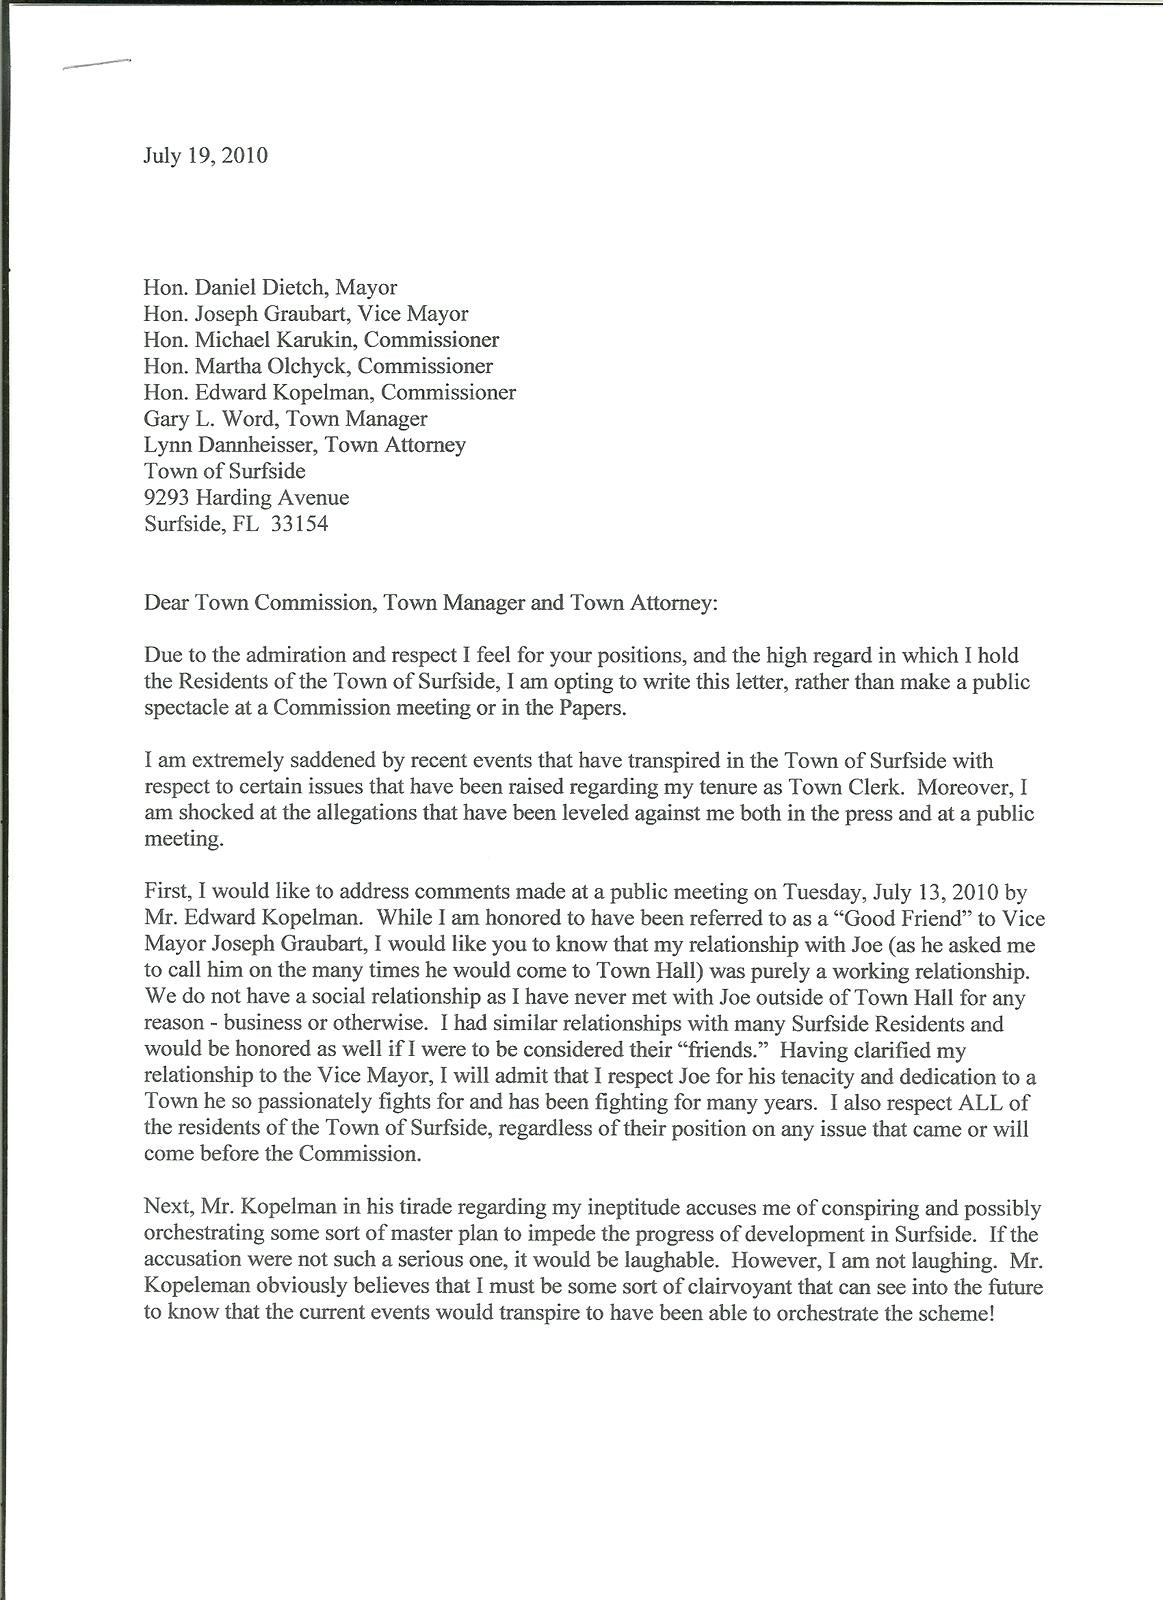 Cease and Desist Contact Letter Template - Cease and Desist Letter Harassment Template Defamation who Controls